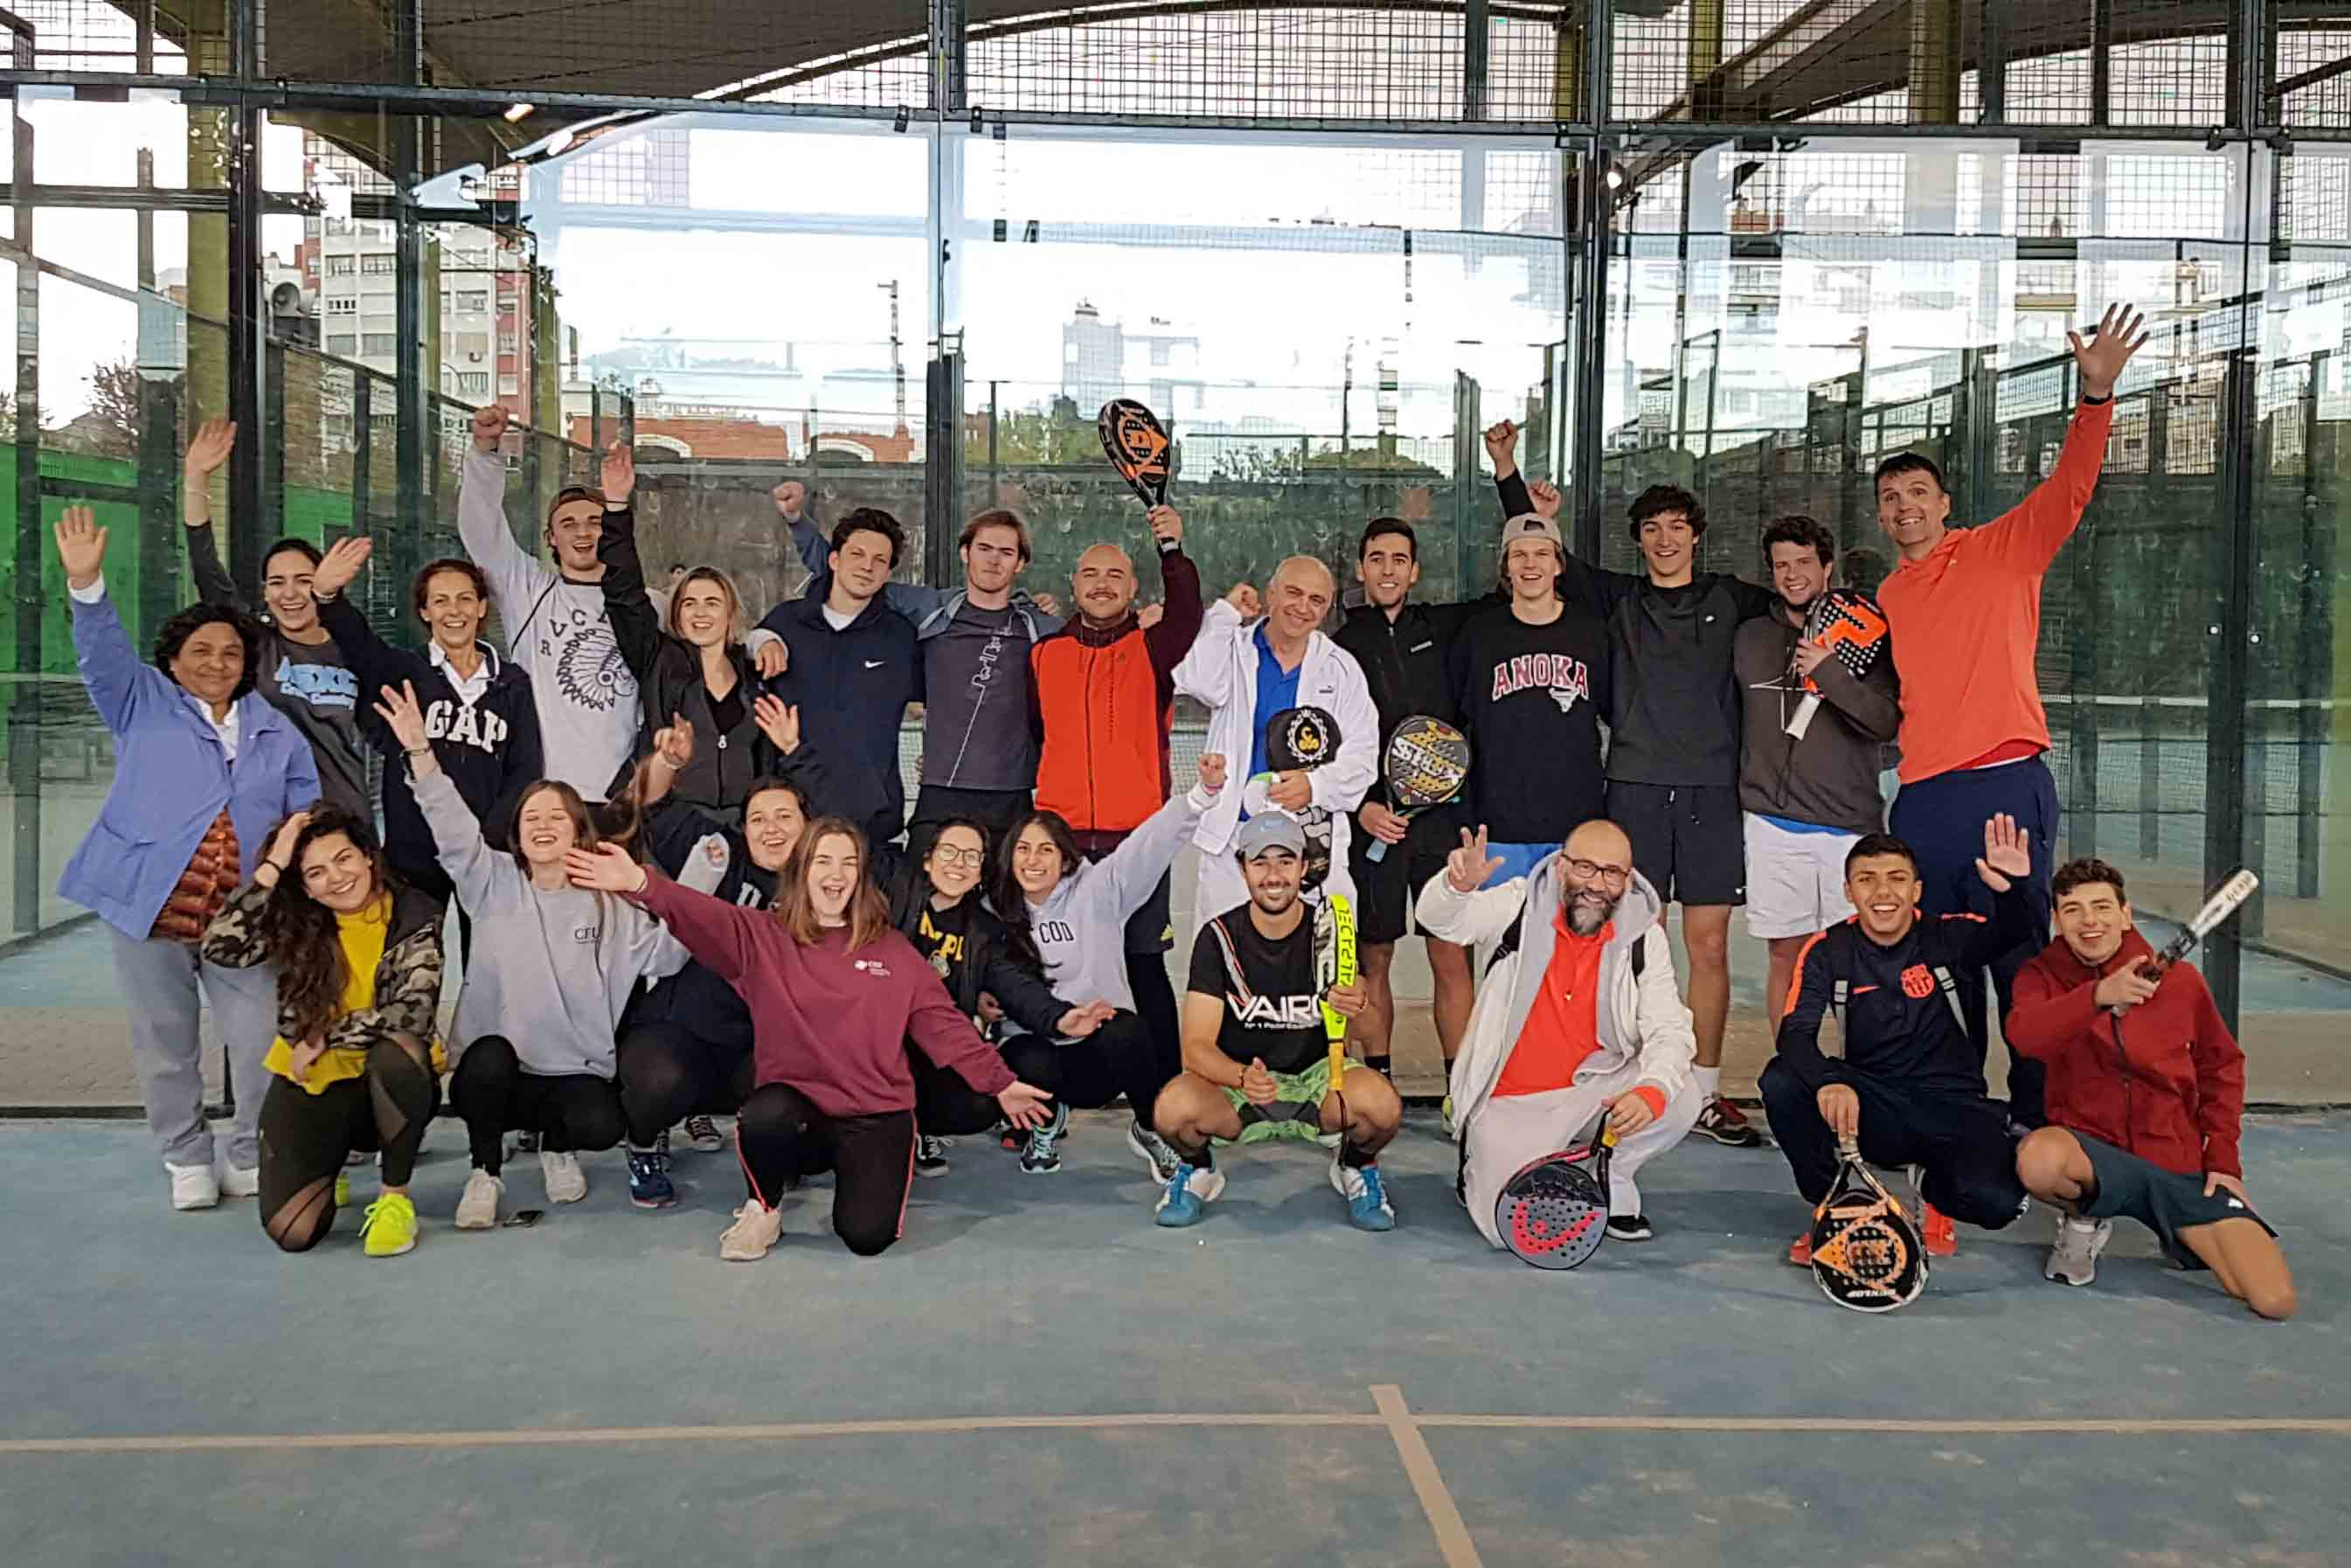 Students, staff and faculty came together for SLU-Madrid's first Paddle Tennis Tournament Fundraiser, raising over 200 euros to support Casa Ronald McDonald, an NGO that assists with the housing needs of families with children who are hospitalized.